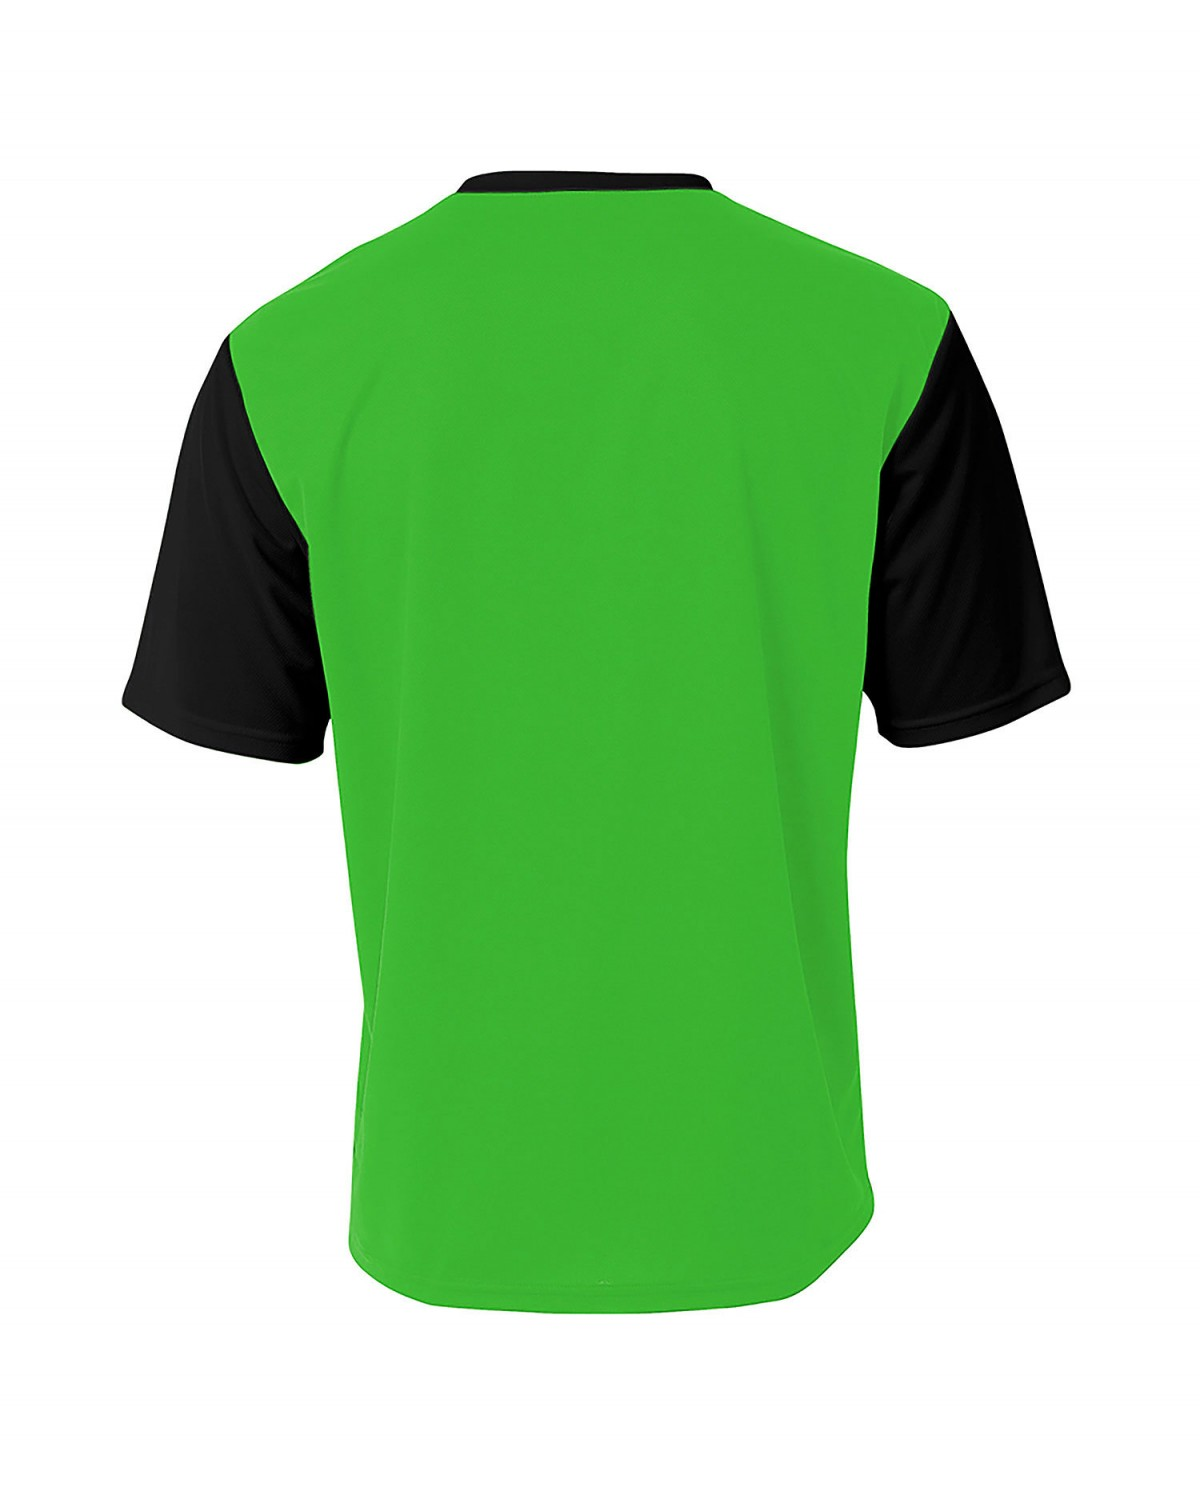 A980 Anvil Heather City Green